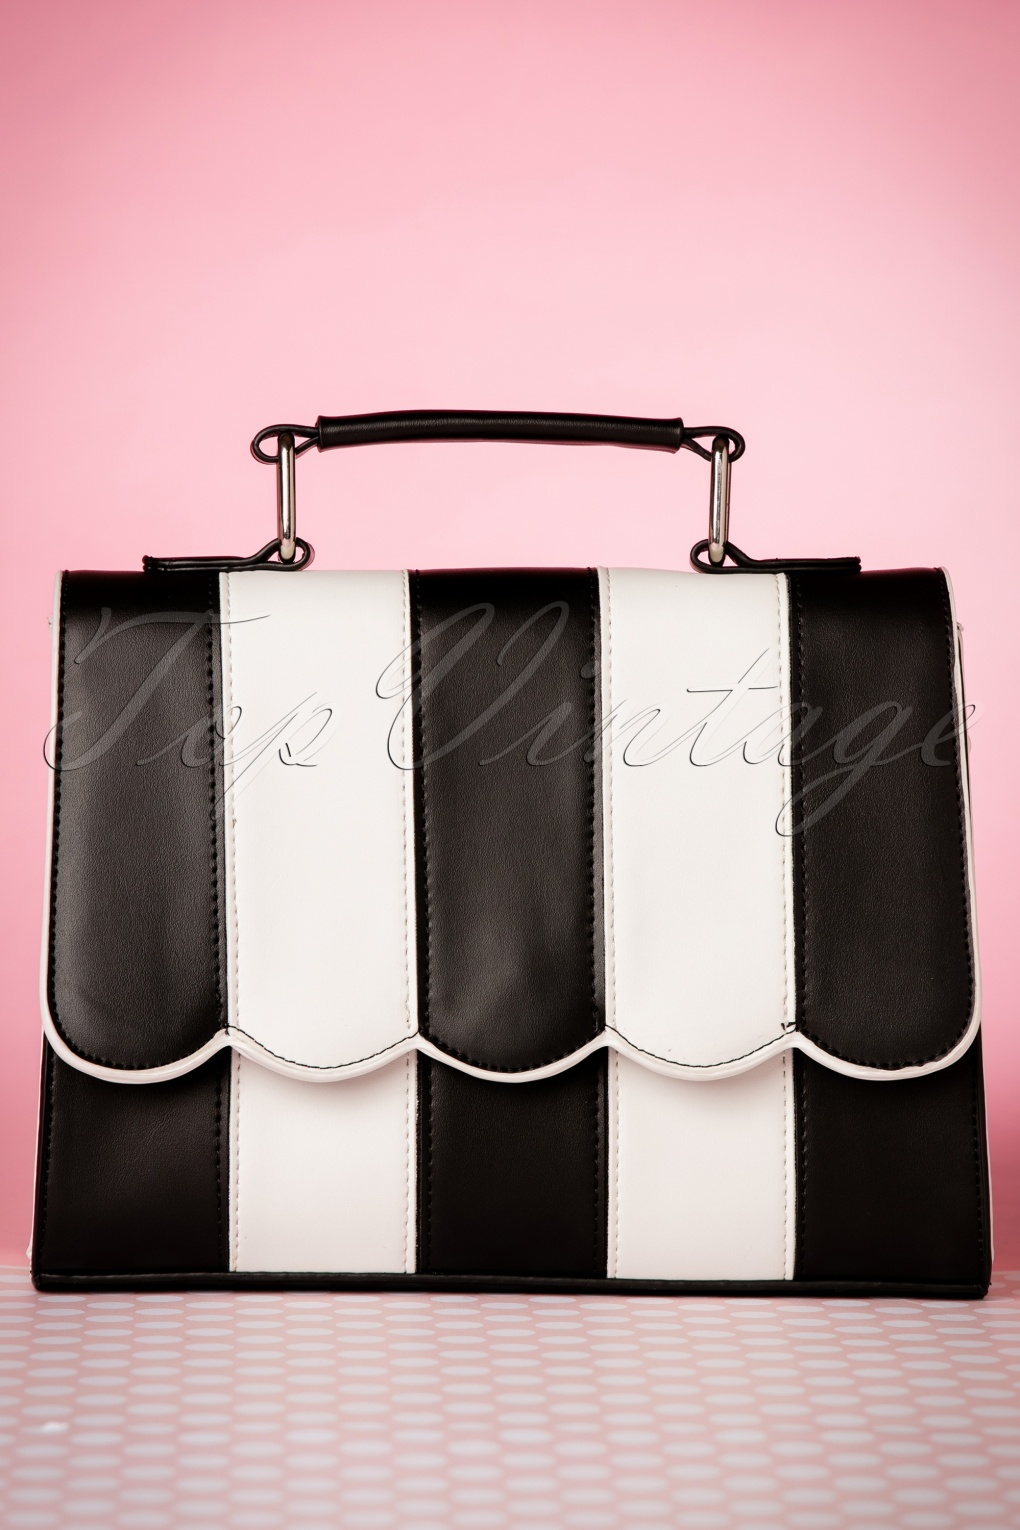 1950s Handbags, Purses, and Evening Bag Styles 50s Stella Striped Handbag in Black and White £55.16 AT vintagedancer.com